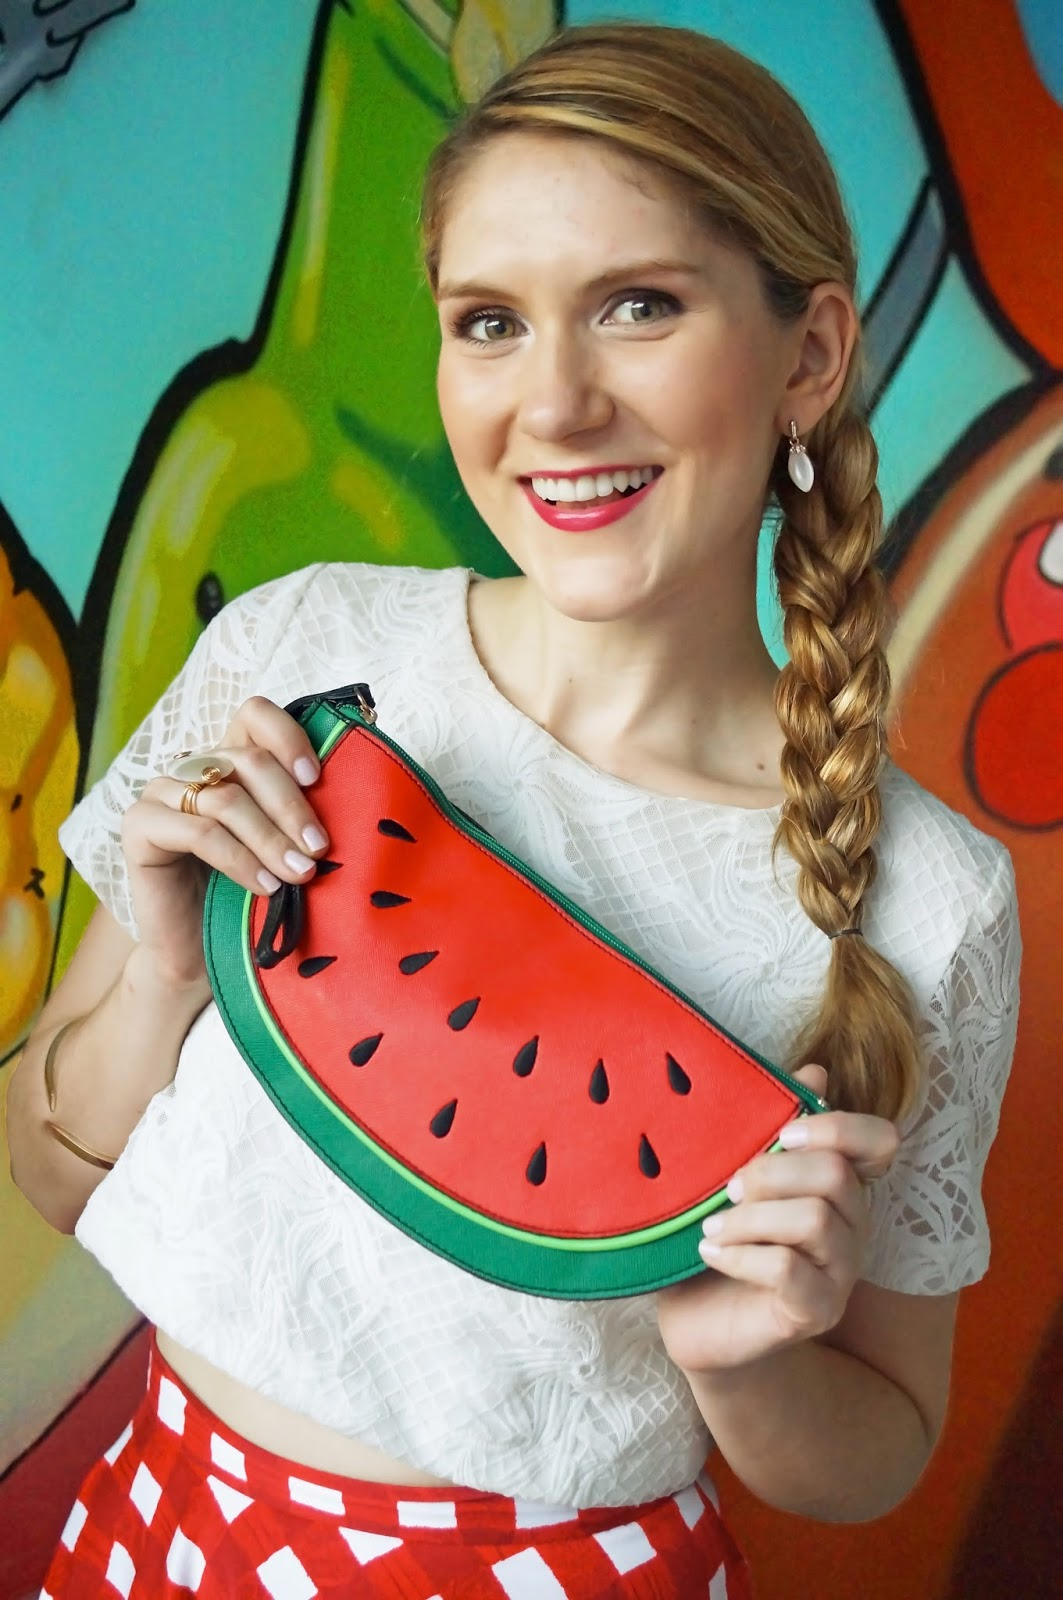 Super cute watermelong clutch!